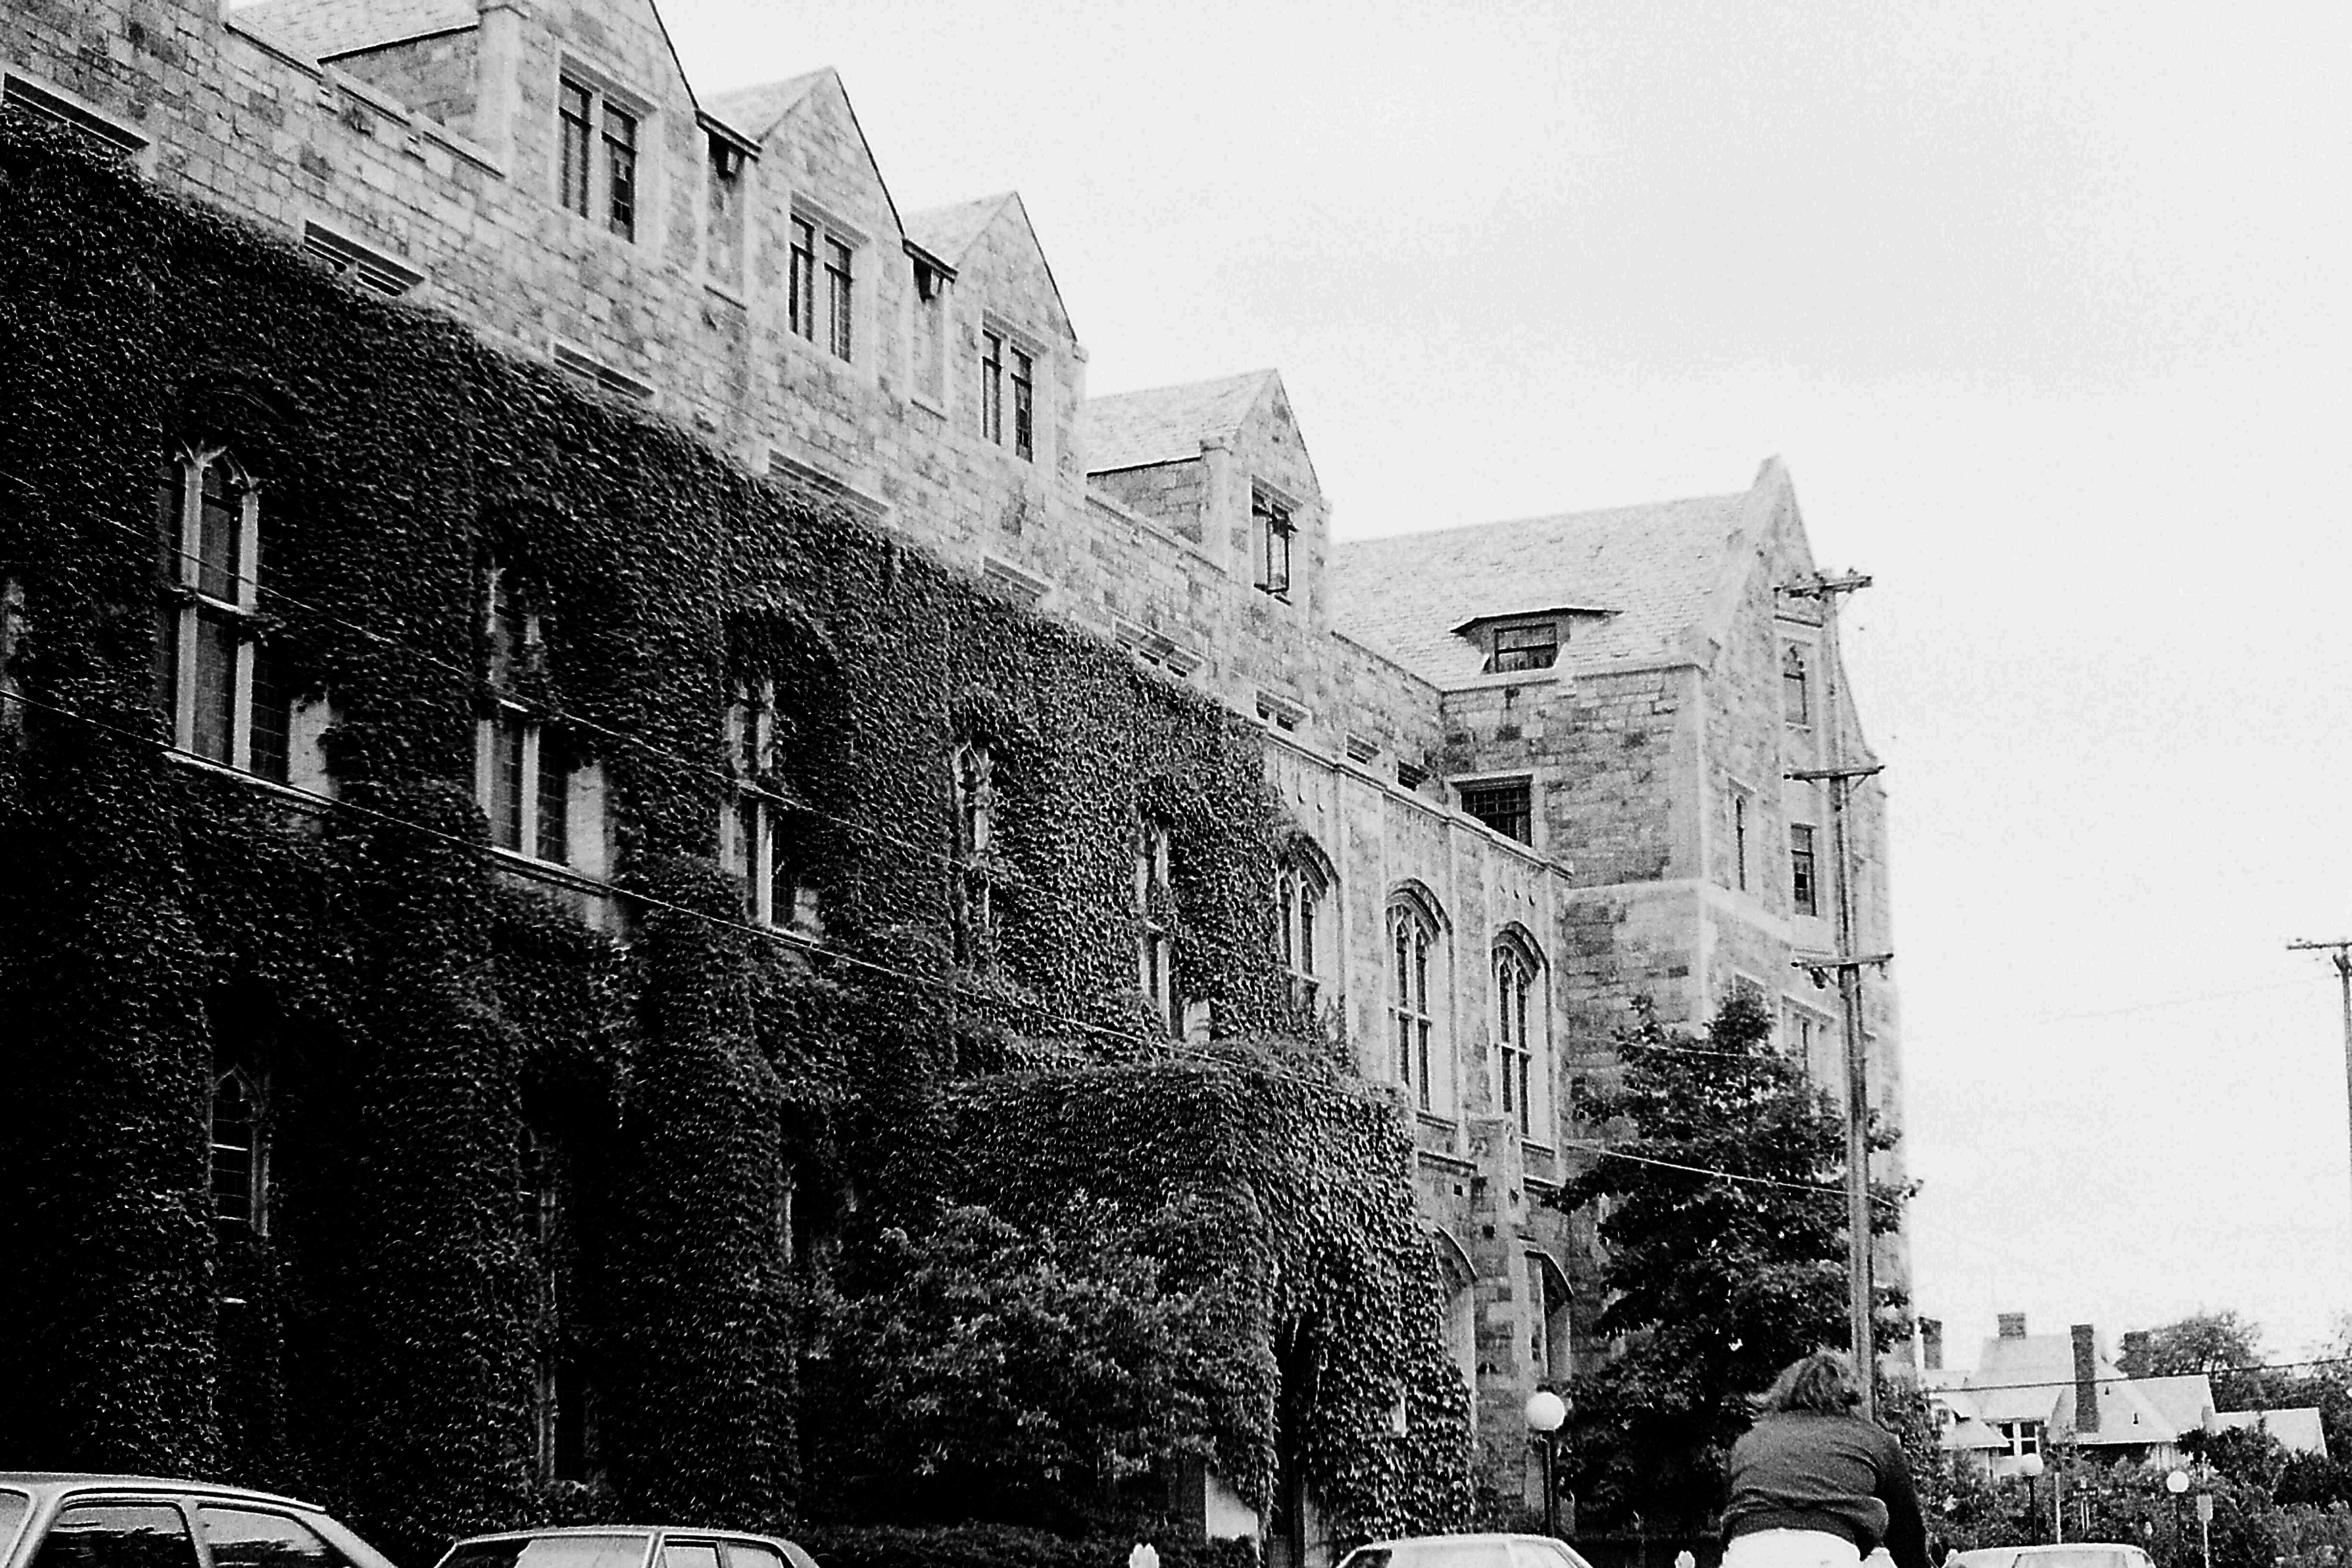 Law Quadrangle, 1979 image